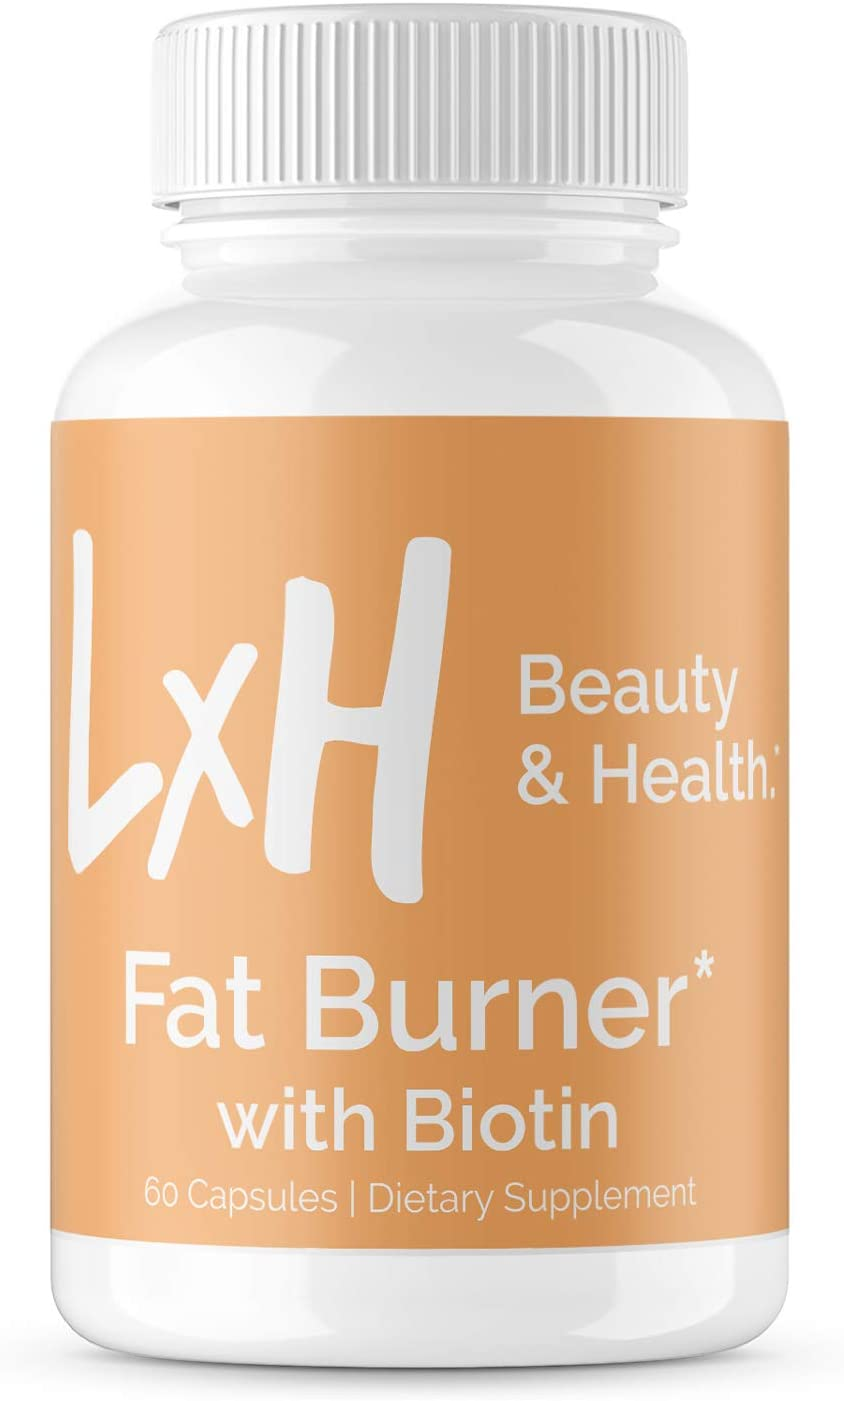 LxH Biotin Fat Burner - Weight Loss Metabolism Booster Appetite Suppressant - Detox & Cleanse with Apple Cider Vinegar, Green Tea Extract - Belly Fat Burner for Women, 60 Vegetarian Weight Loss Pills